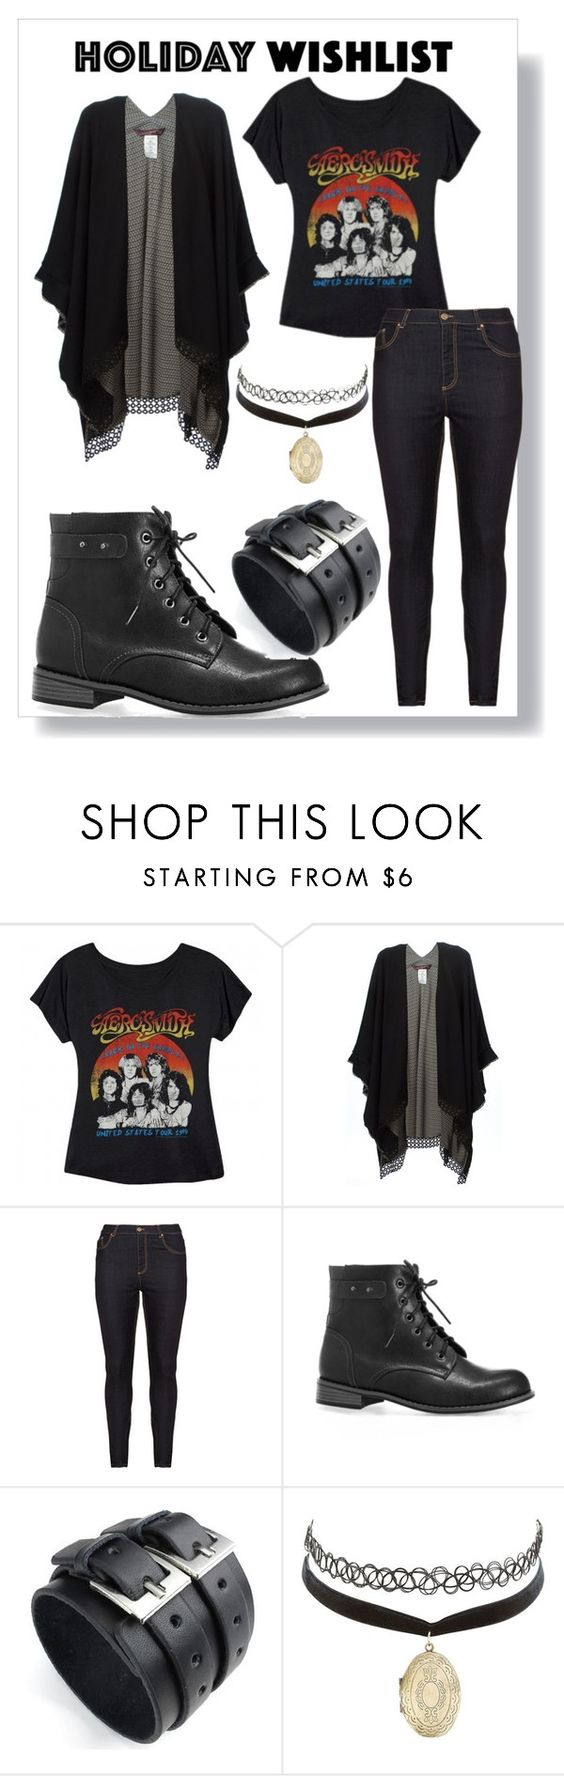 """Black Christmas"" by lovecostarica ❤ liked on Polyvore featuring Antonia Zander, Carmakoma, Avenue, Charlotte Russe, contestentry and 2015wishlist"